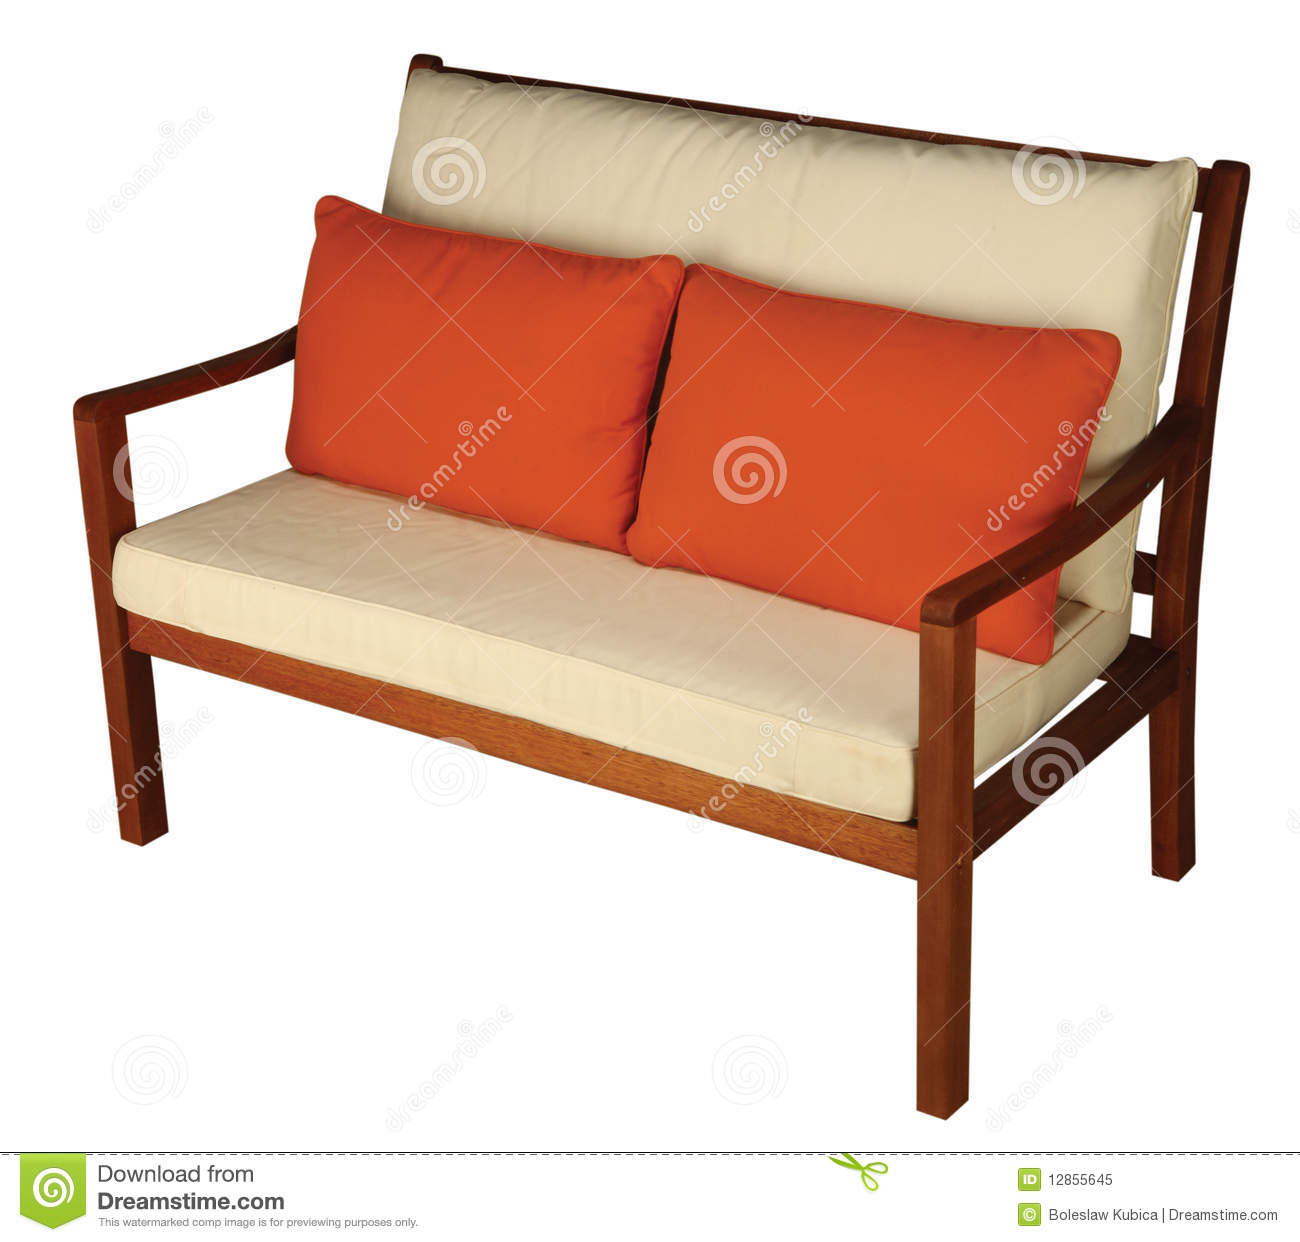 Wooden sofa cushion stock photos download images